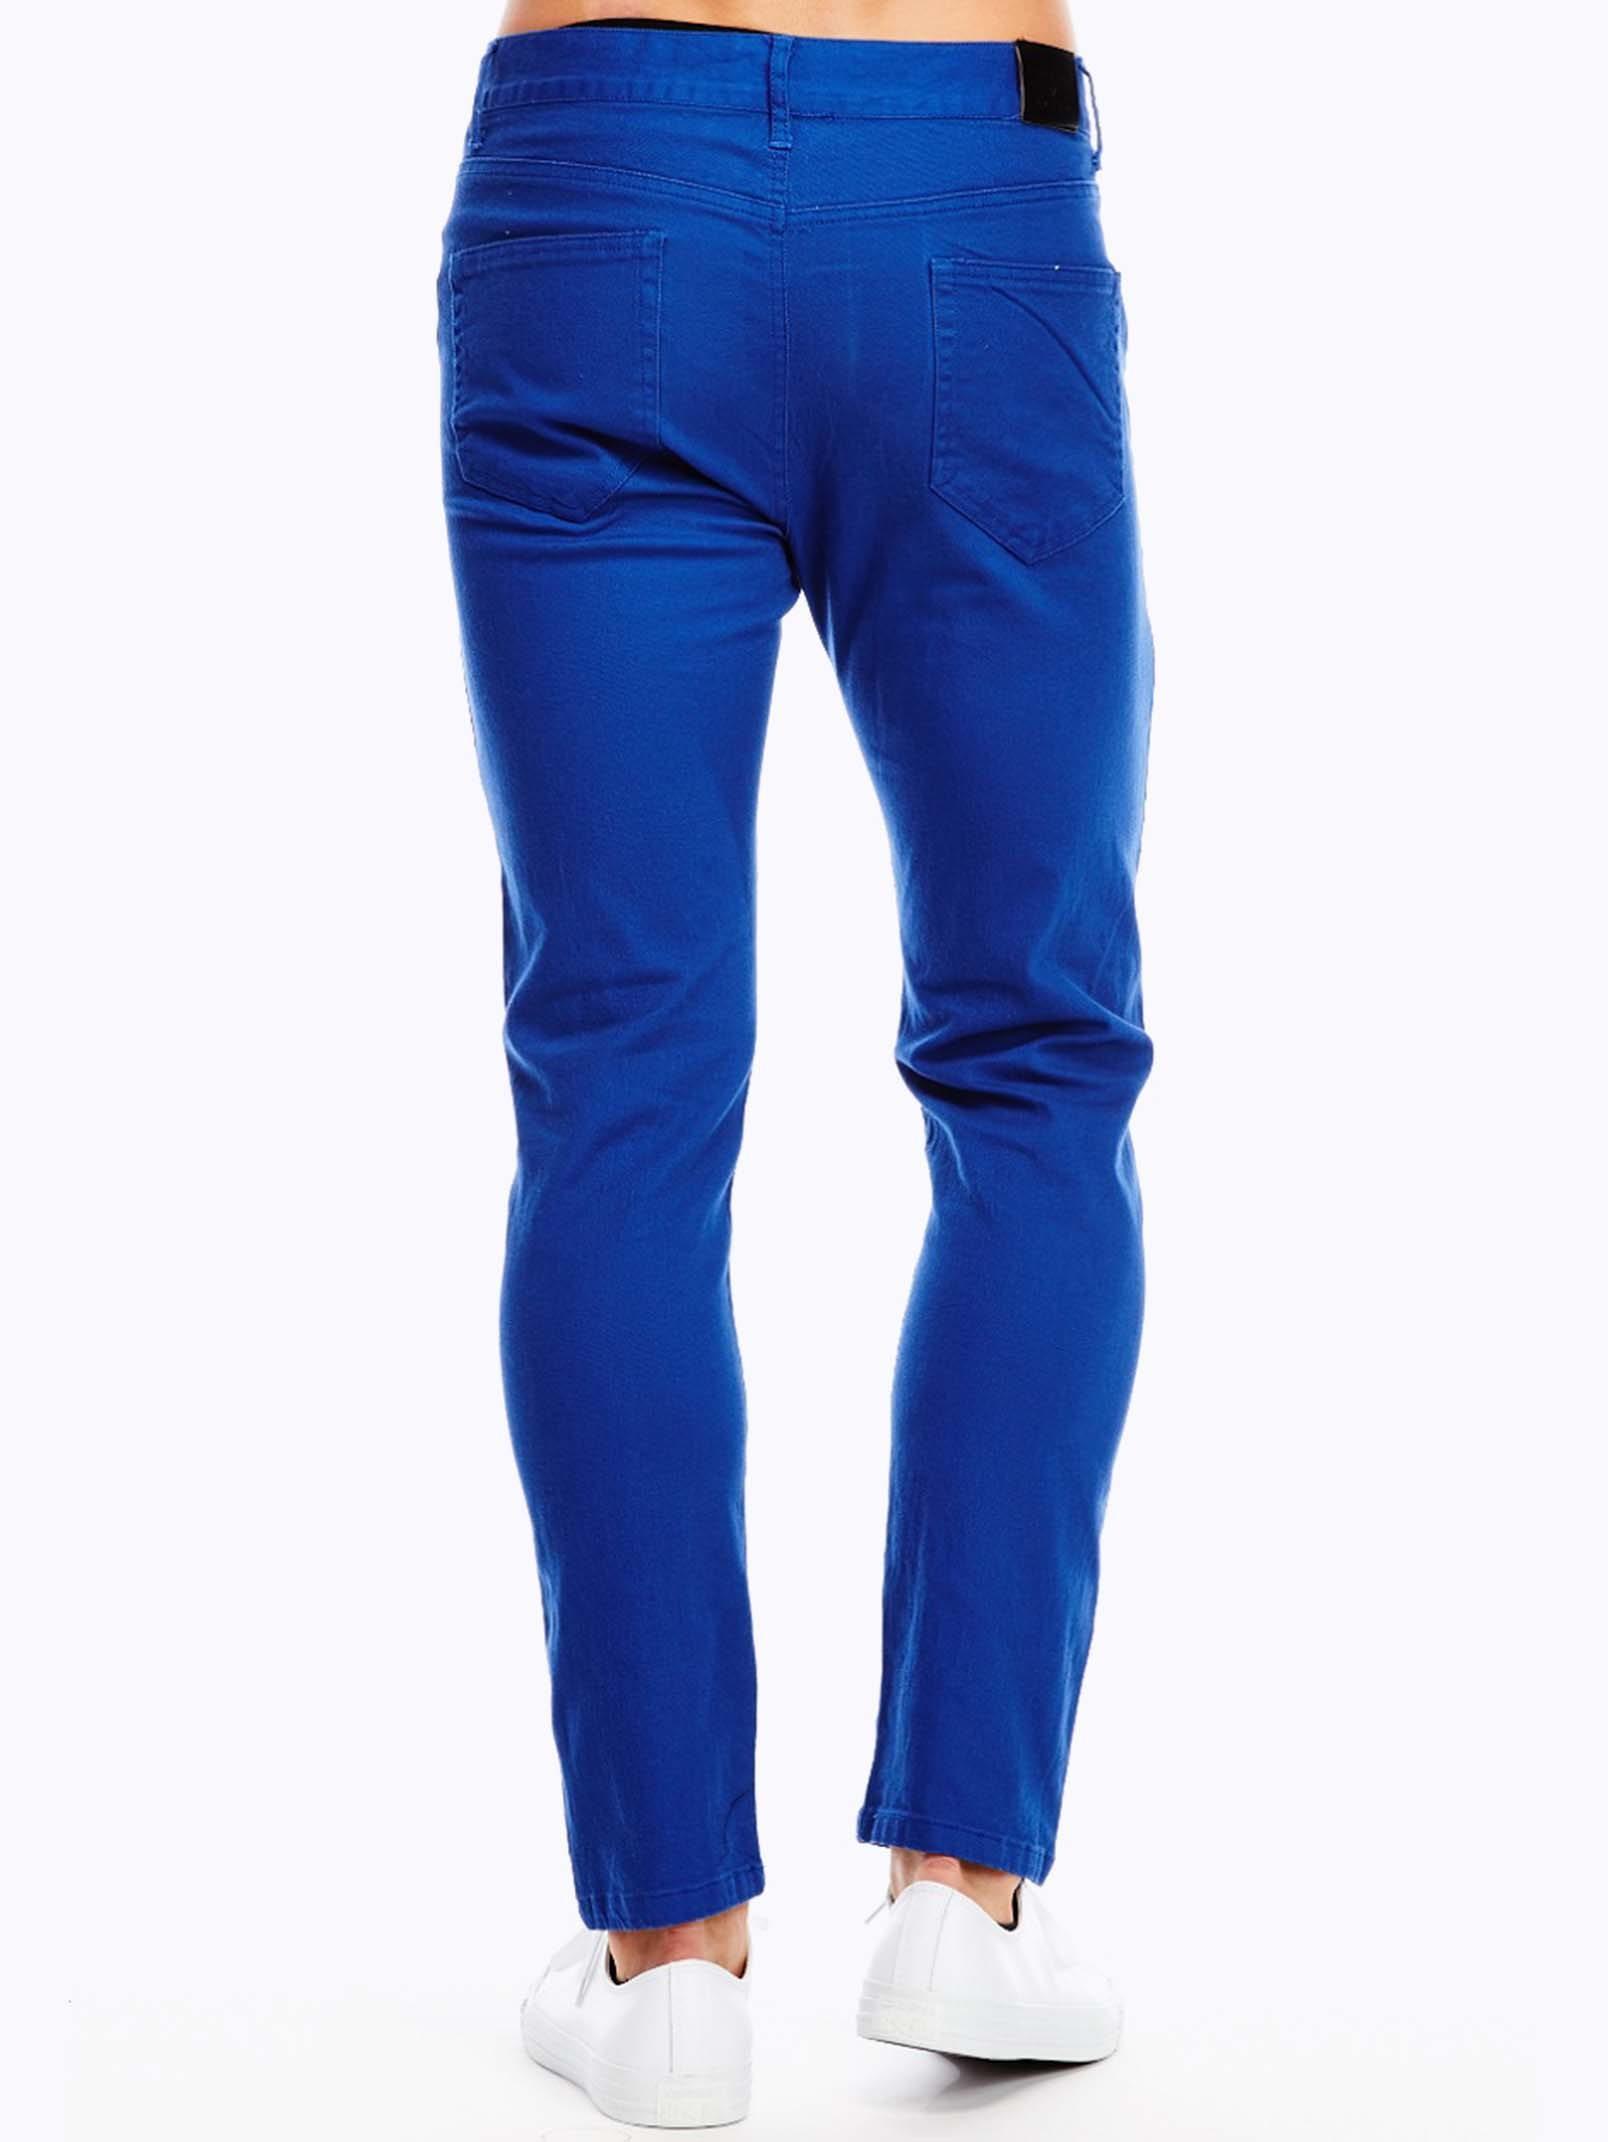 Blue T Shirts With Black Pants And Shoes